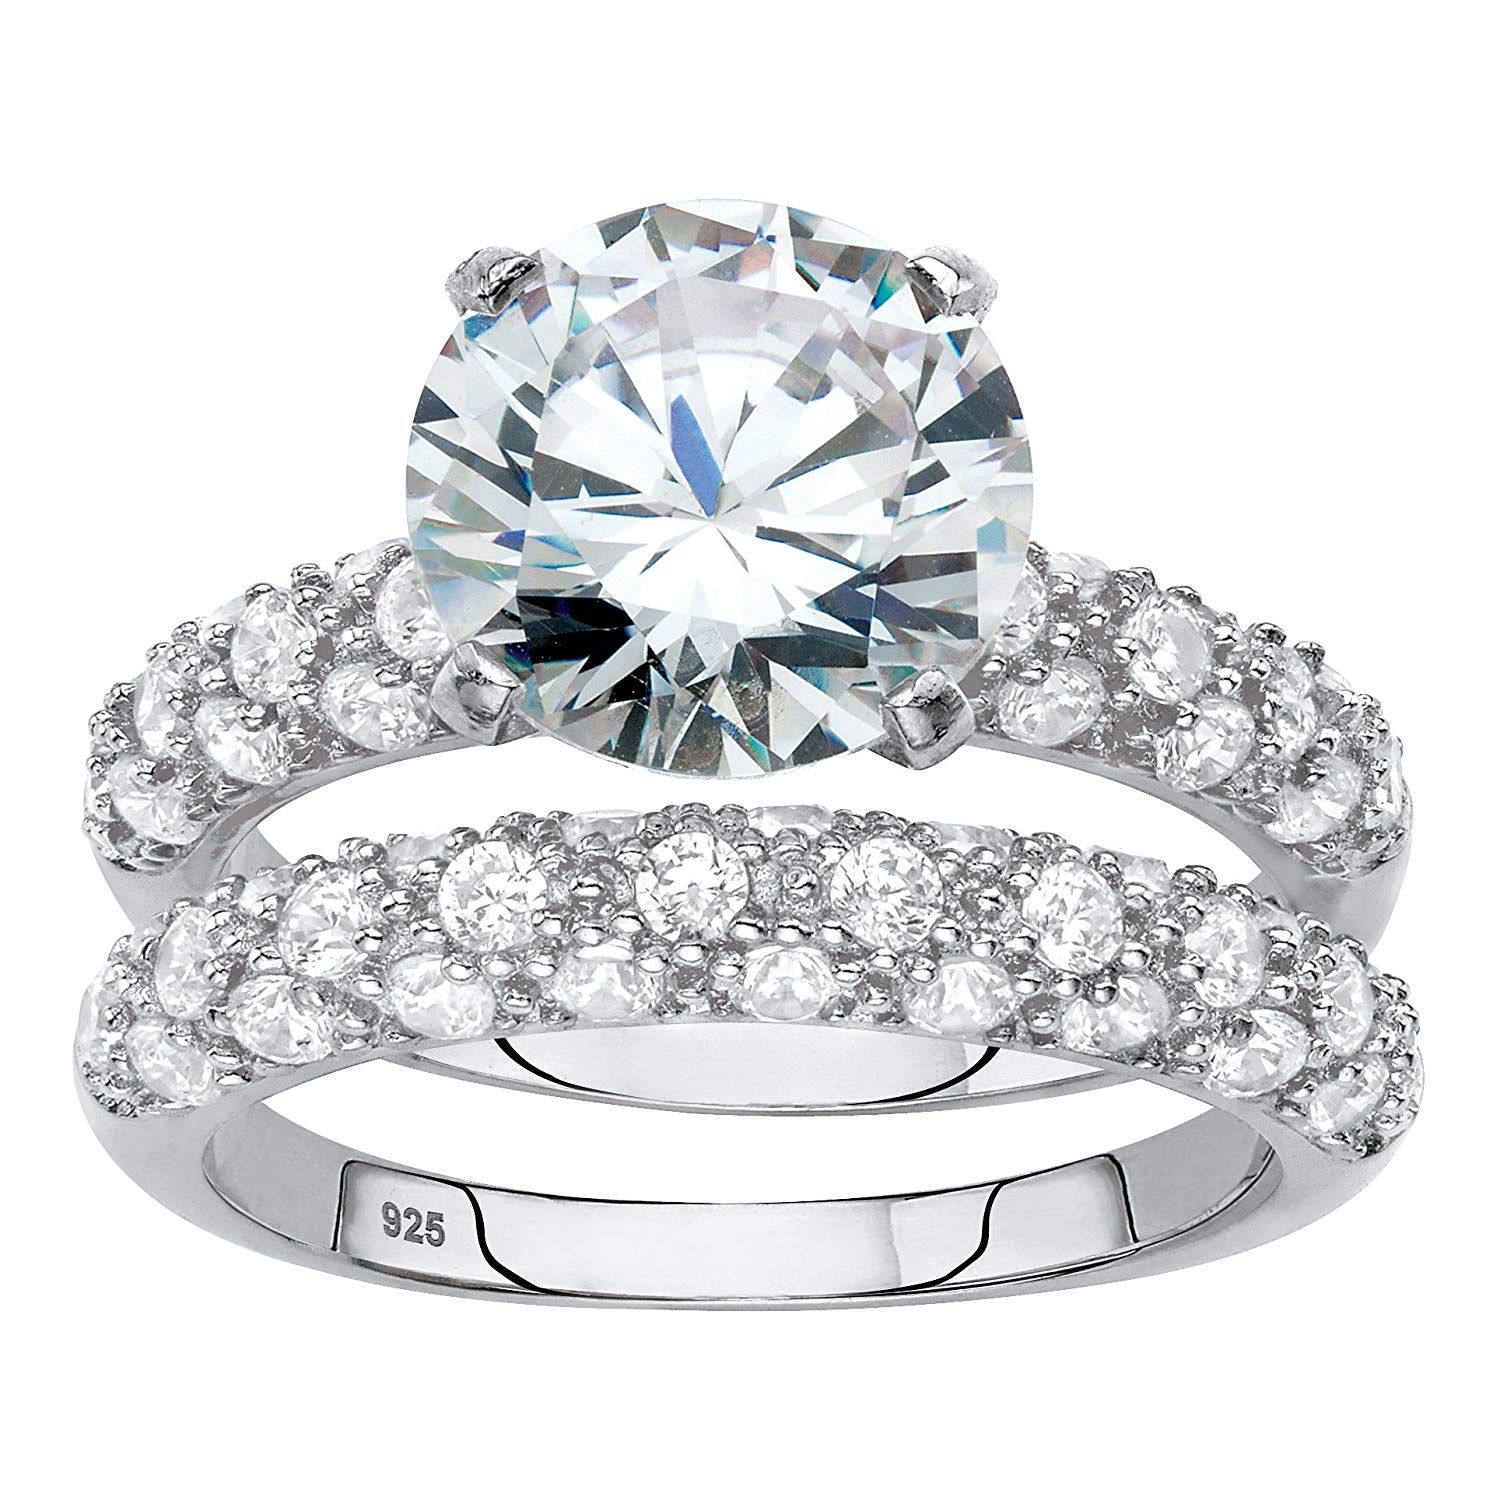 Platinum over Sterling Silver Round Cubic Zirconia Bridal